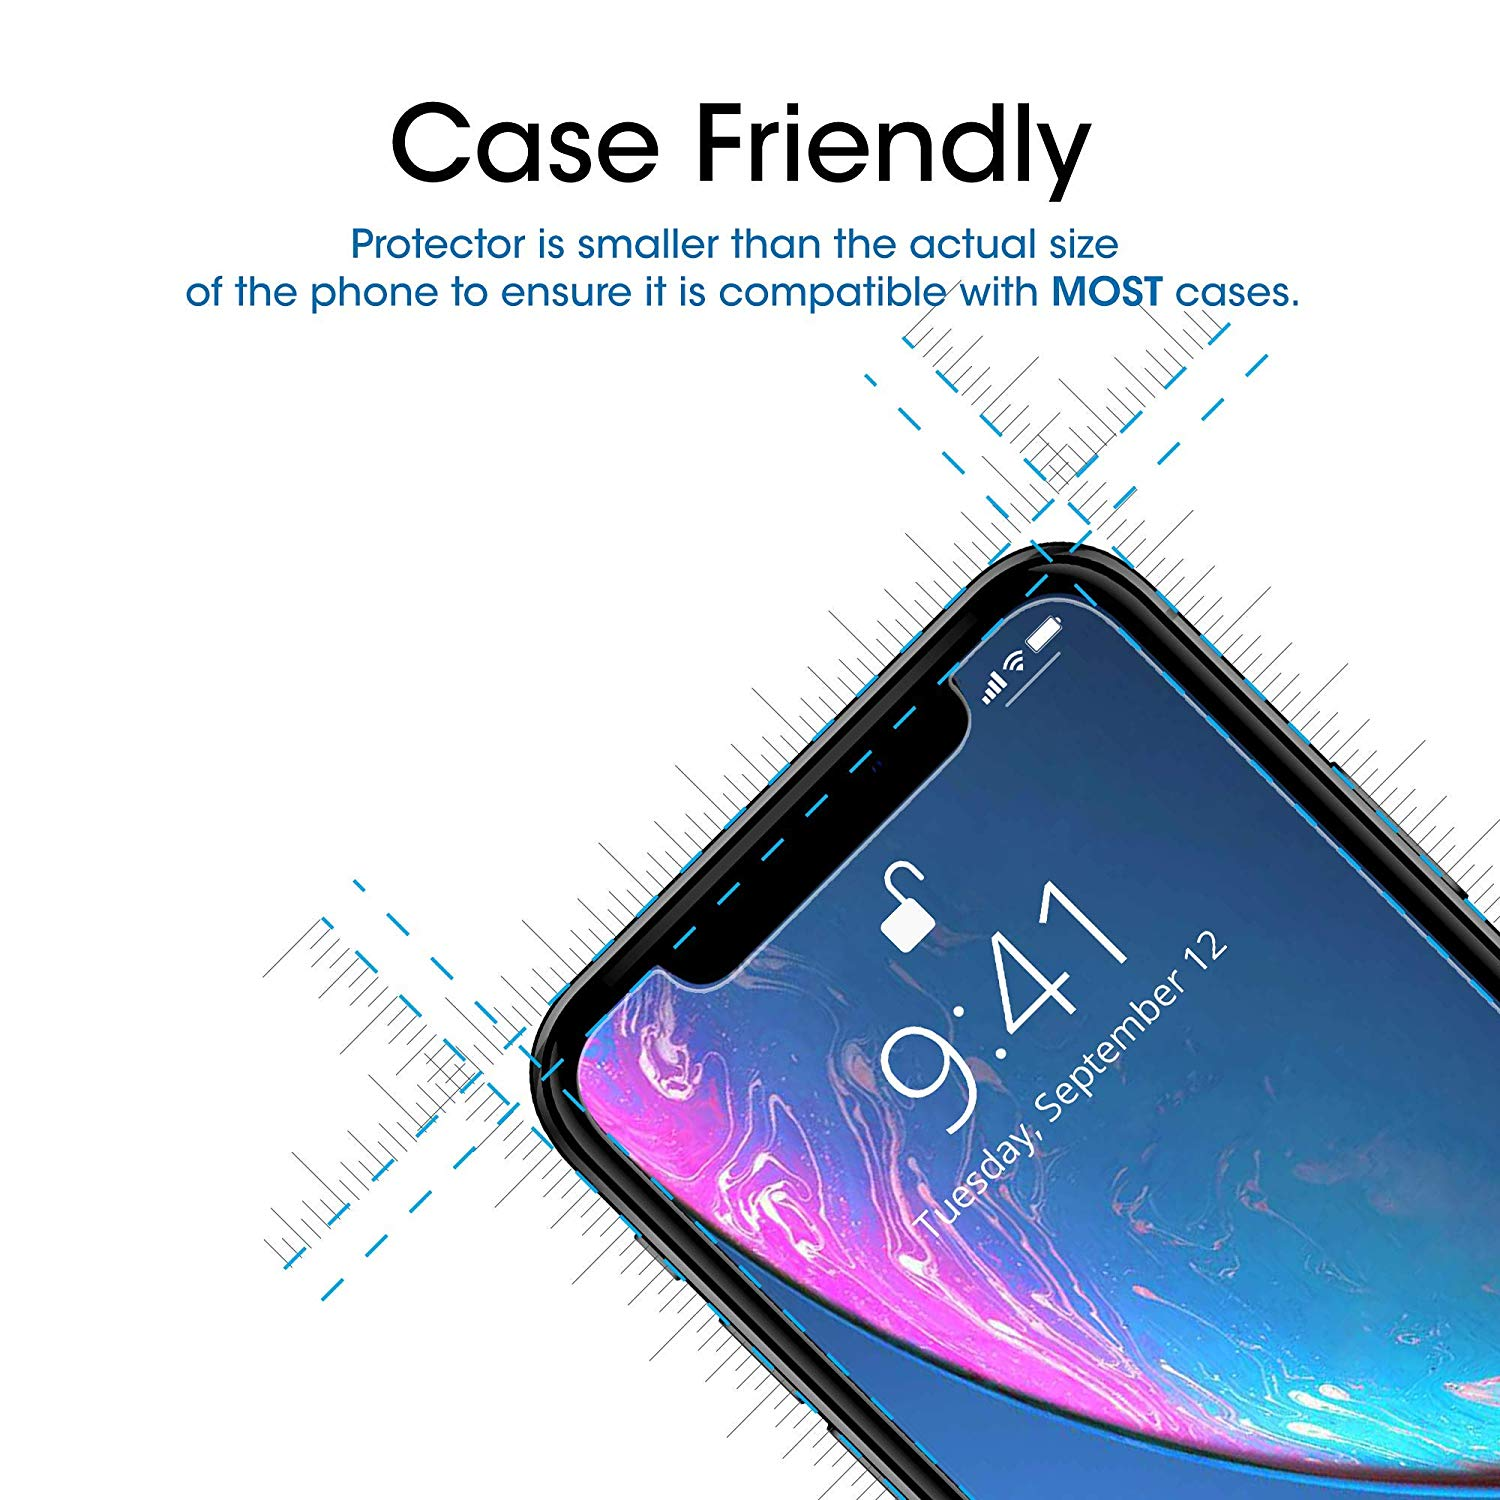 thumbnail 21 - Leather Flip Wallet Case Tempered Glass Cover For iPhone 11 Pro Max XS XR 8 7 6s